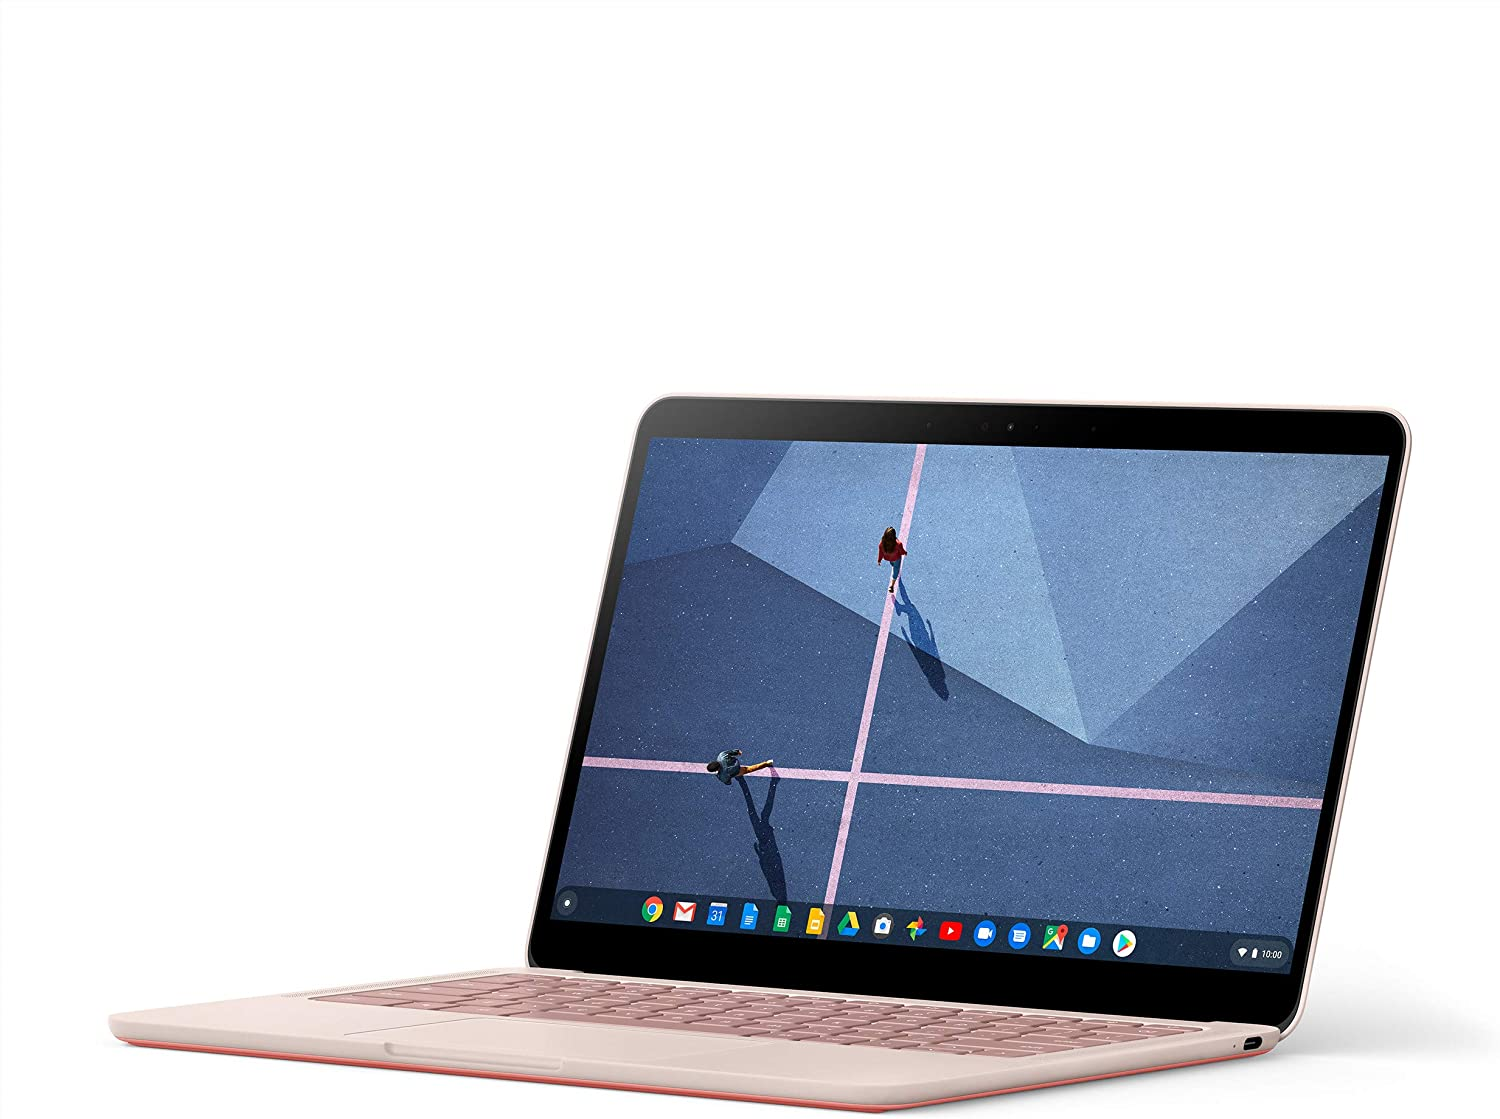 Google Pixelbook Go - Lightweight pink color Chromebook Laptop